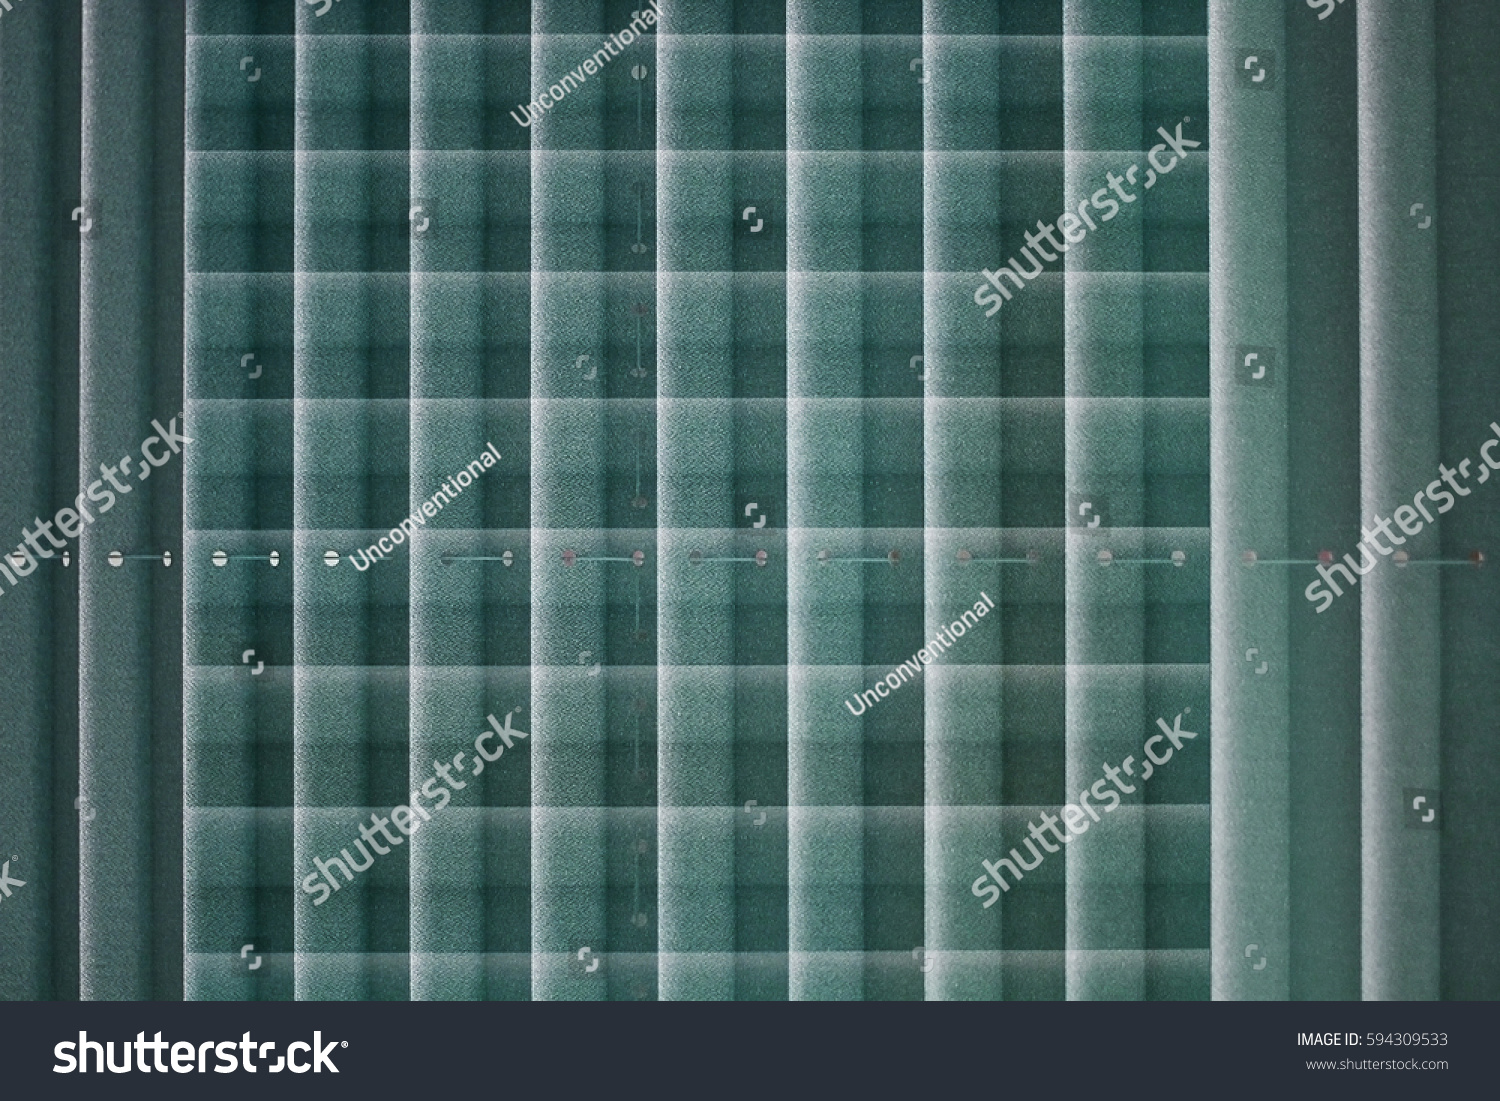 two layers louvers blinds jalousie teal stock photo 594309533 shutterstock. Black Bedroom Furniture Sets. Home Design Ideas